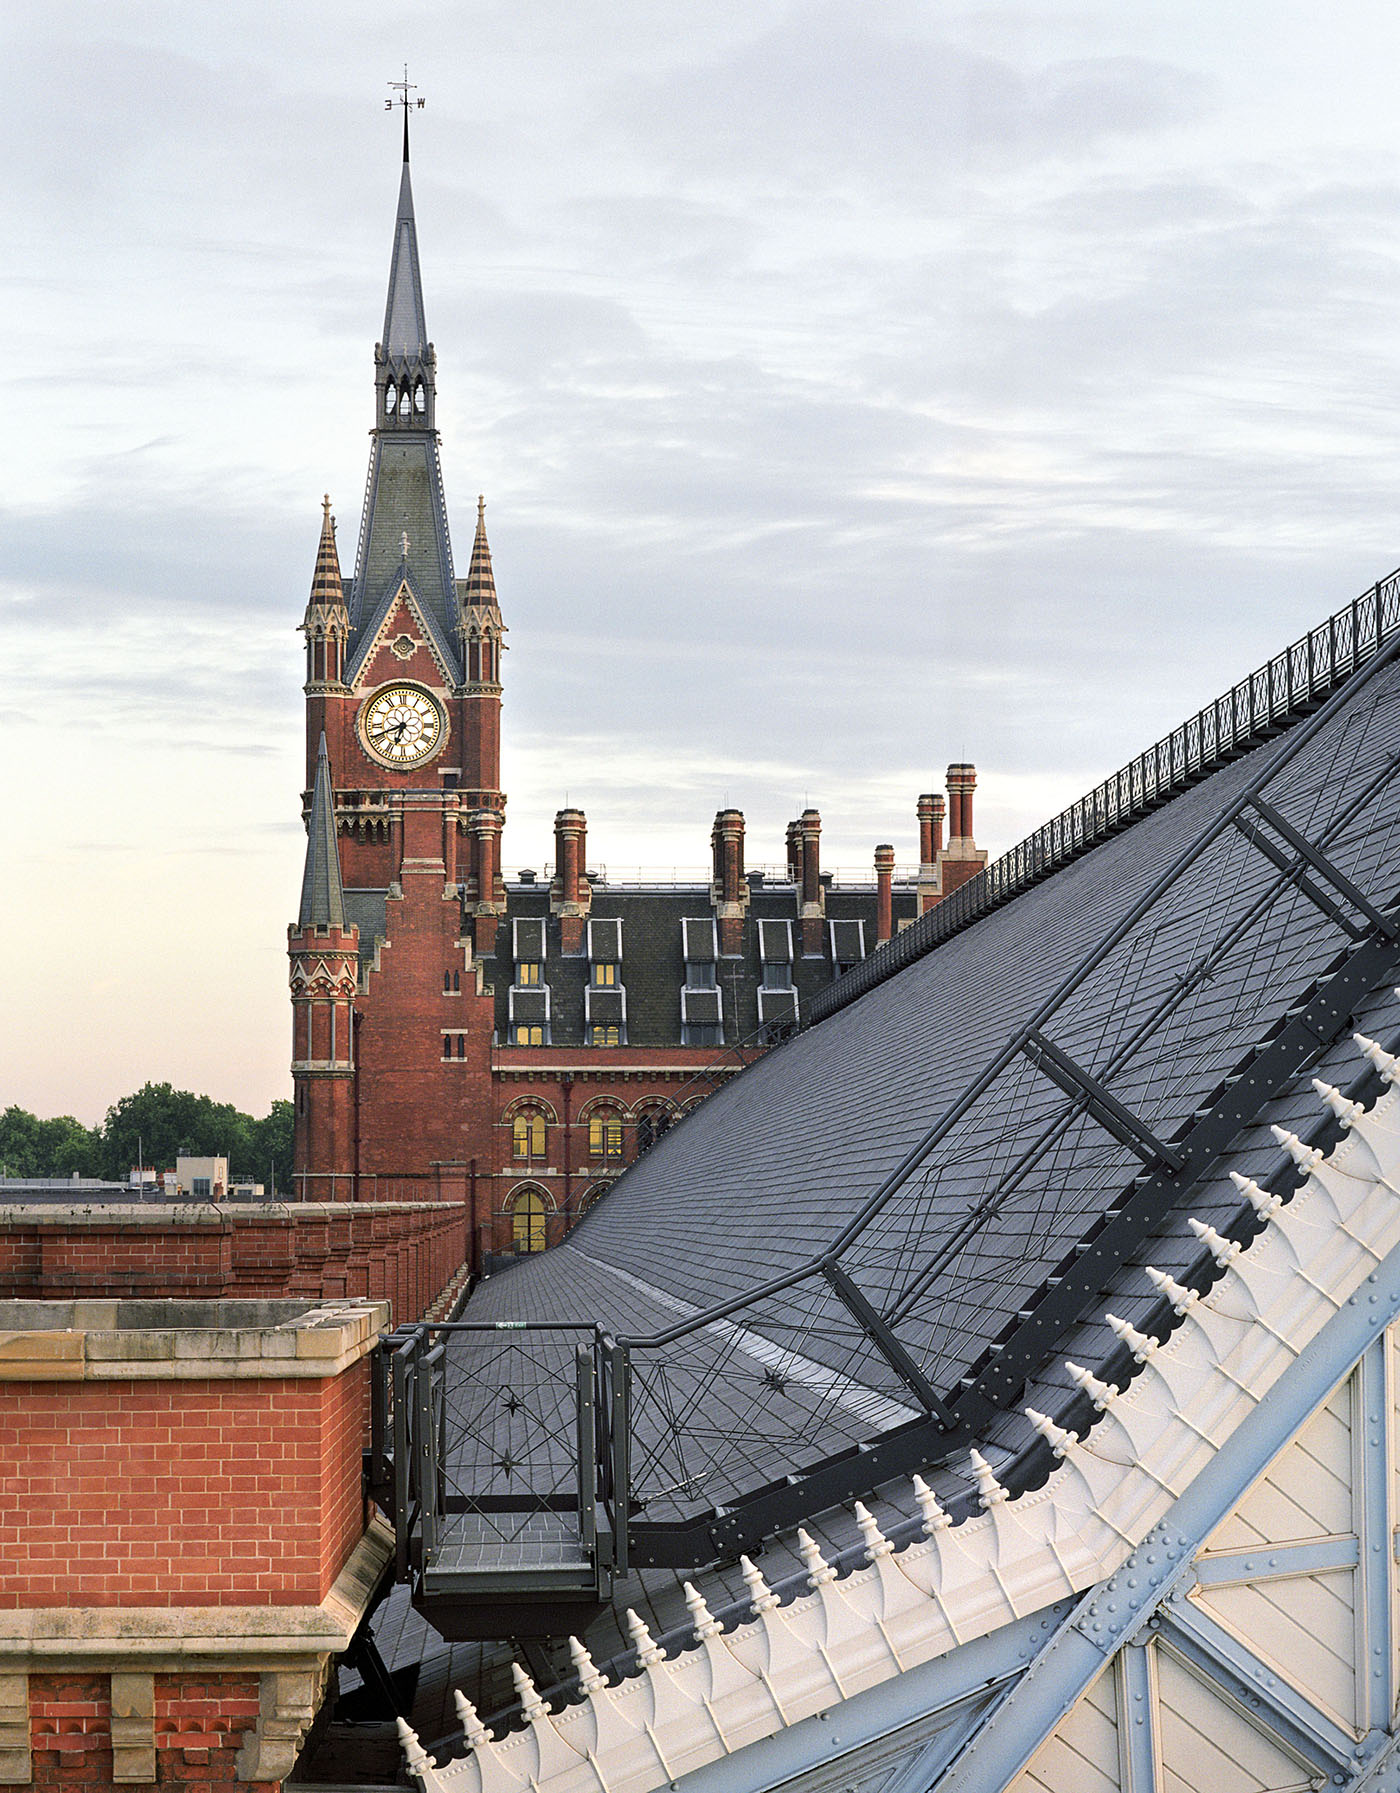 The Tower of St Pancras Hotel as seen from the roof of the Barlow Shed at St Pancras International